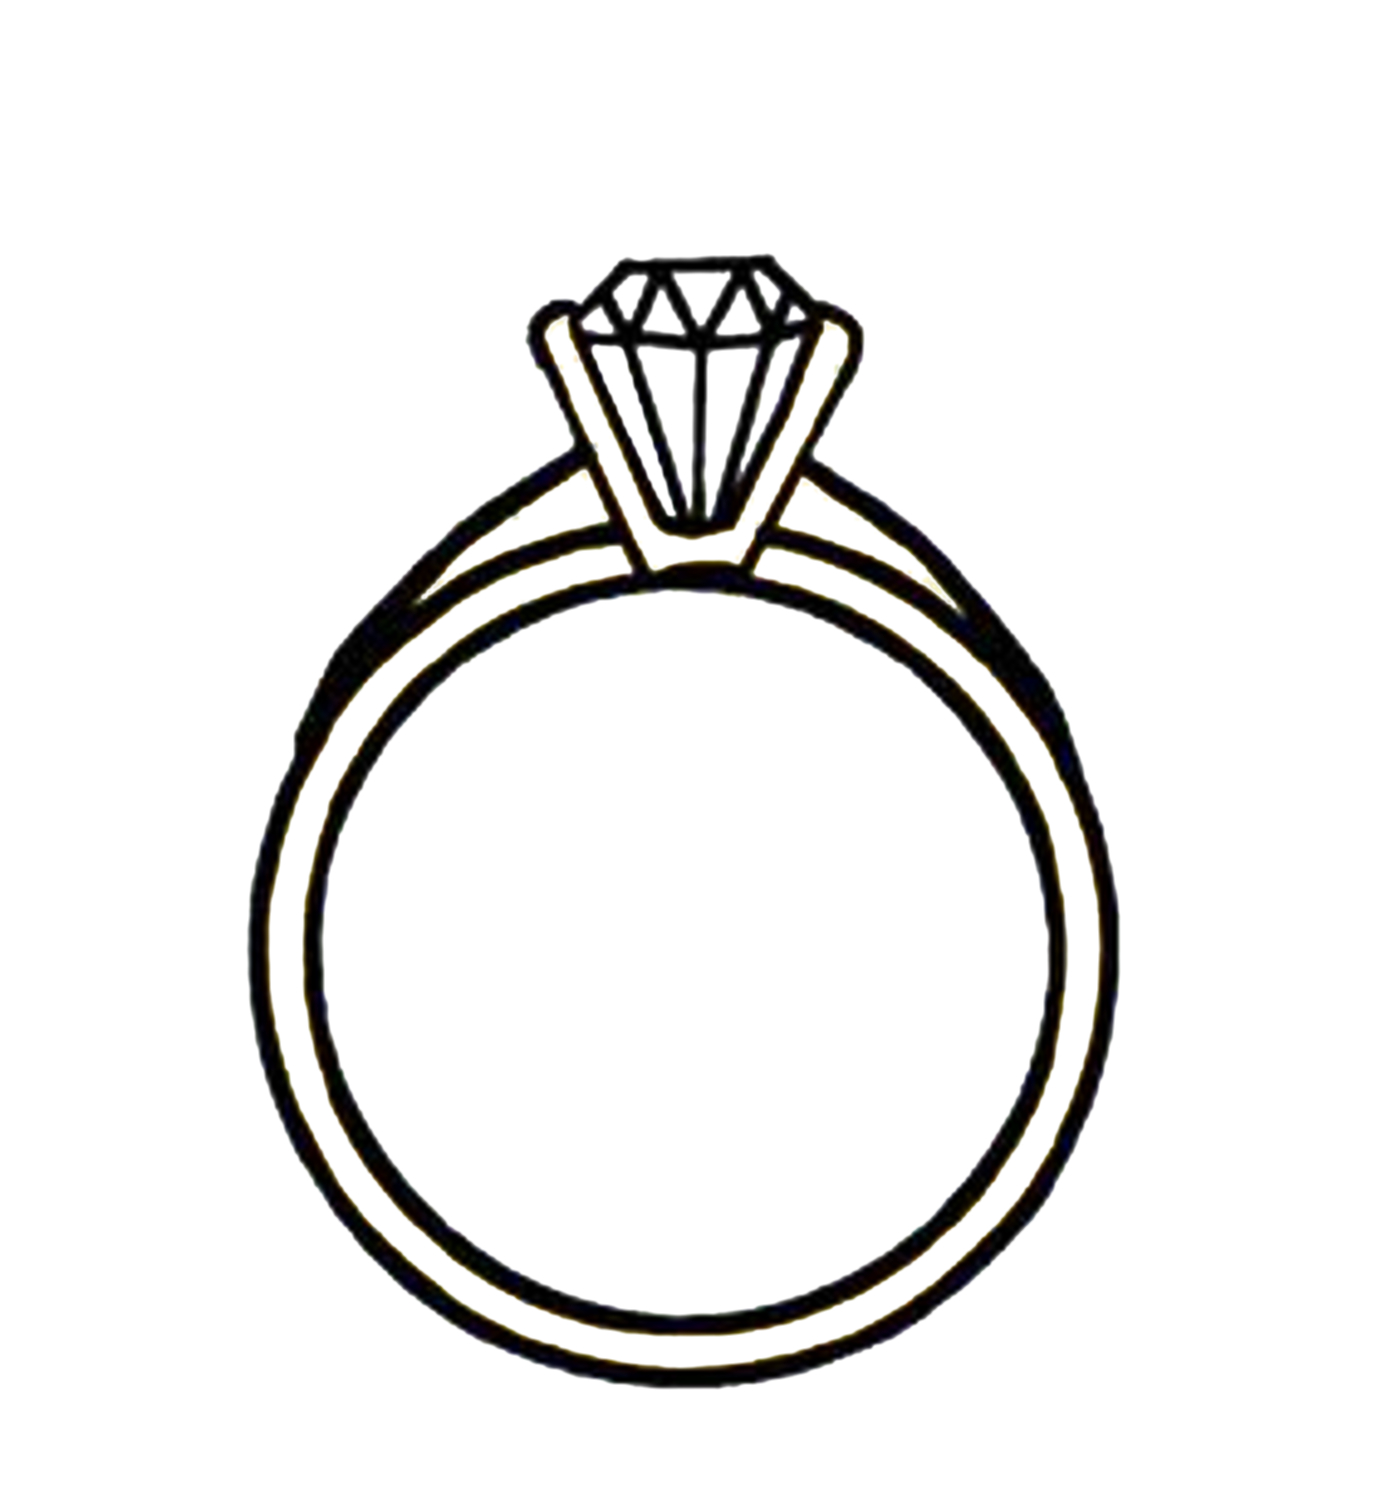 Linked wedding rings clipart free images 5